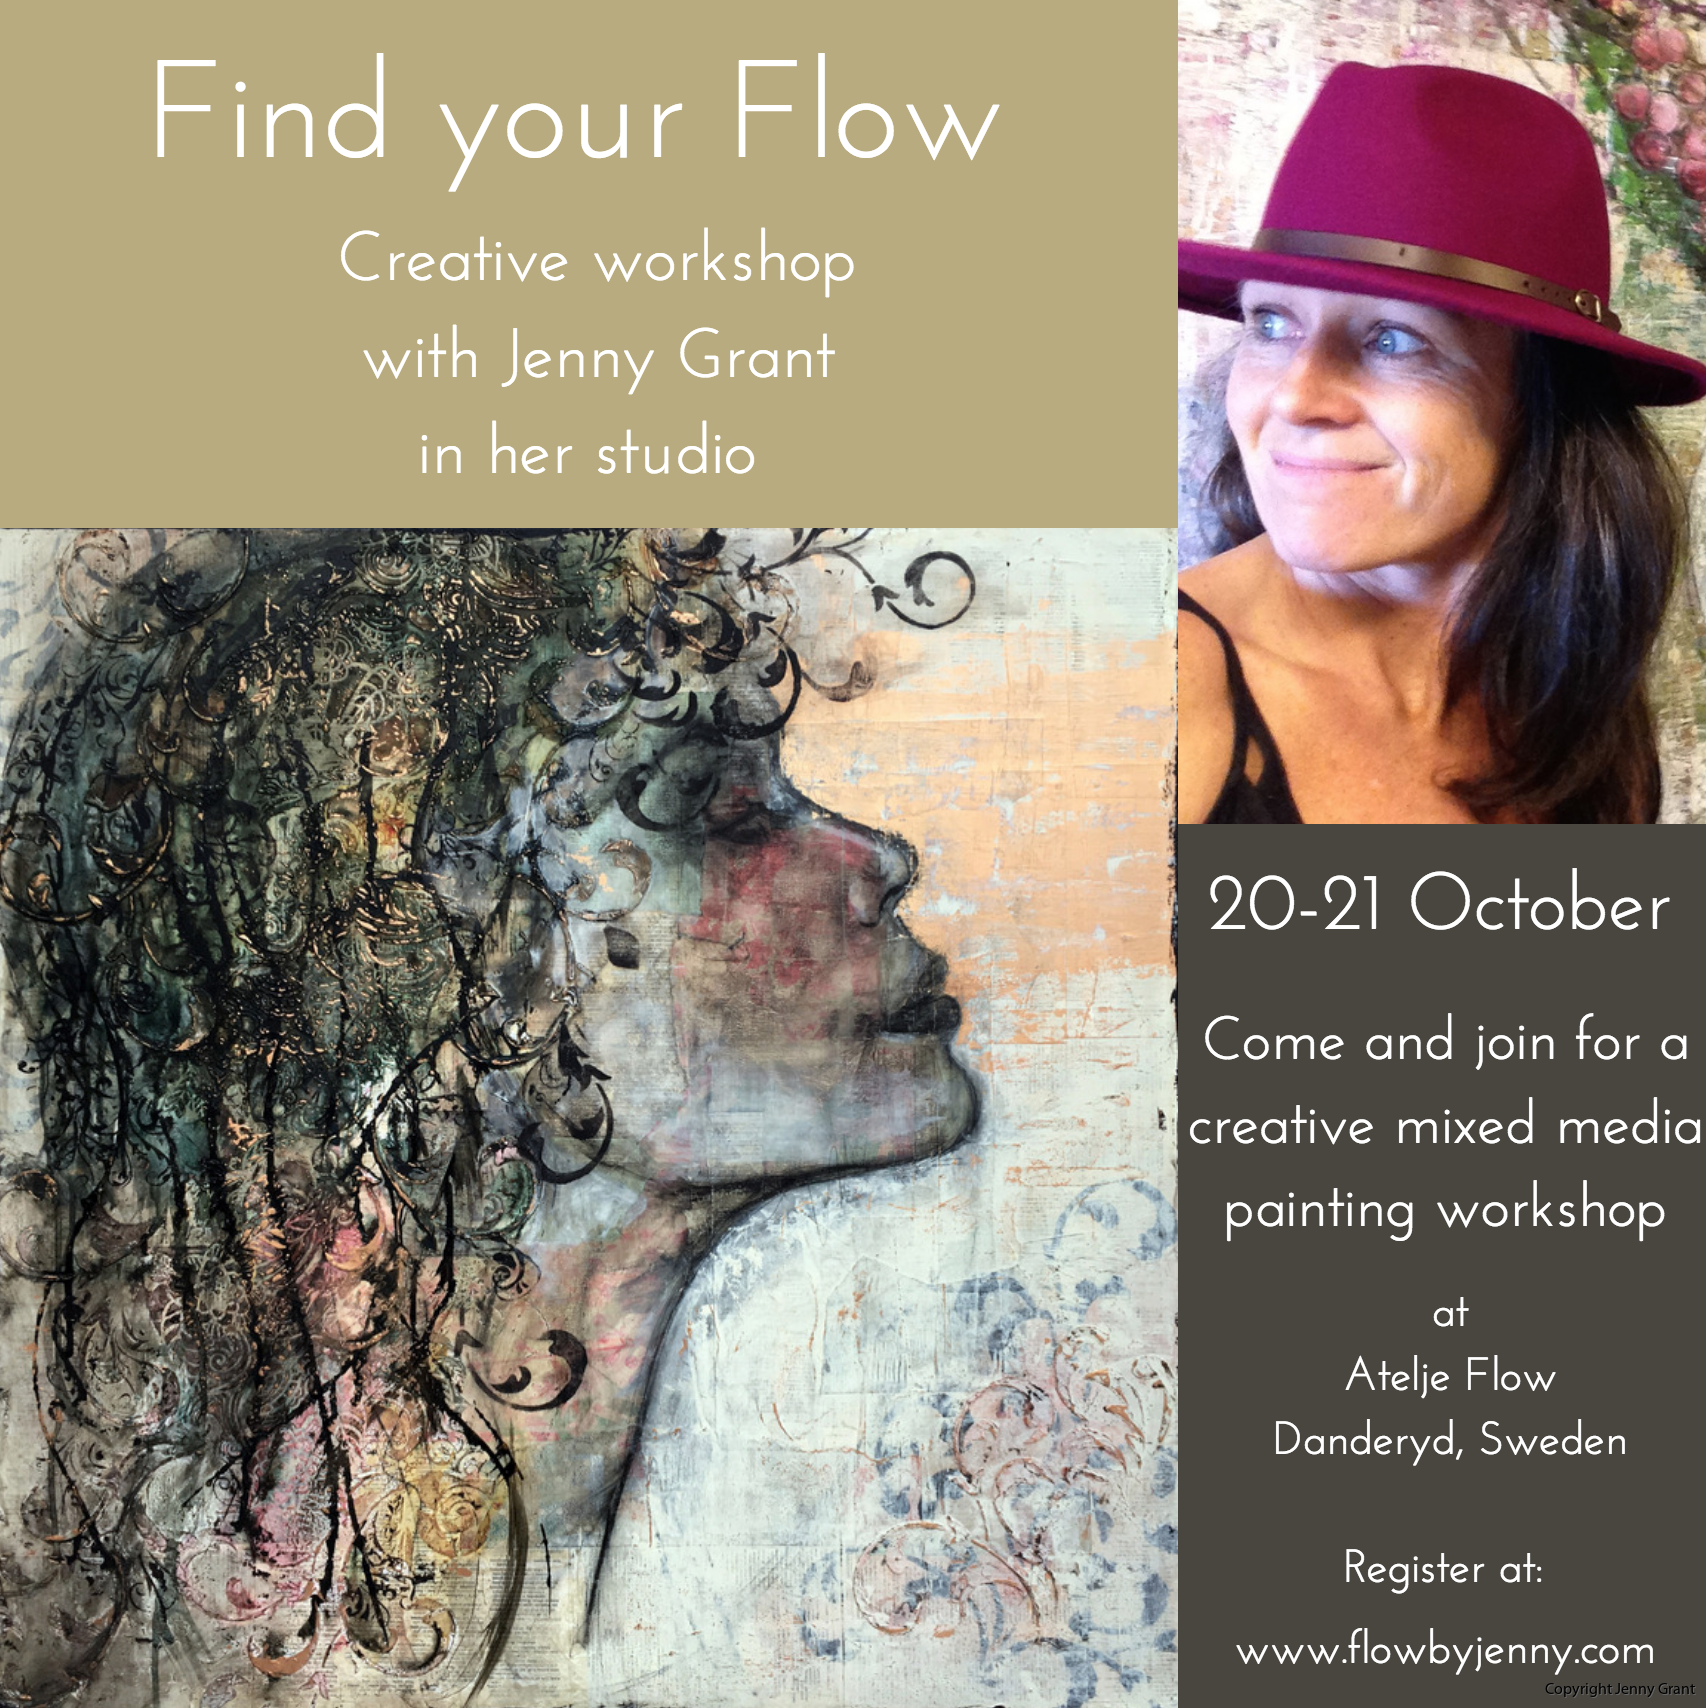 Find your Flow Jenny Grant